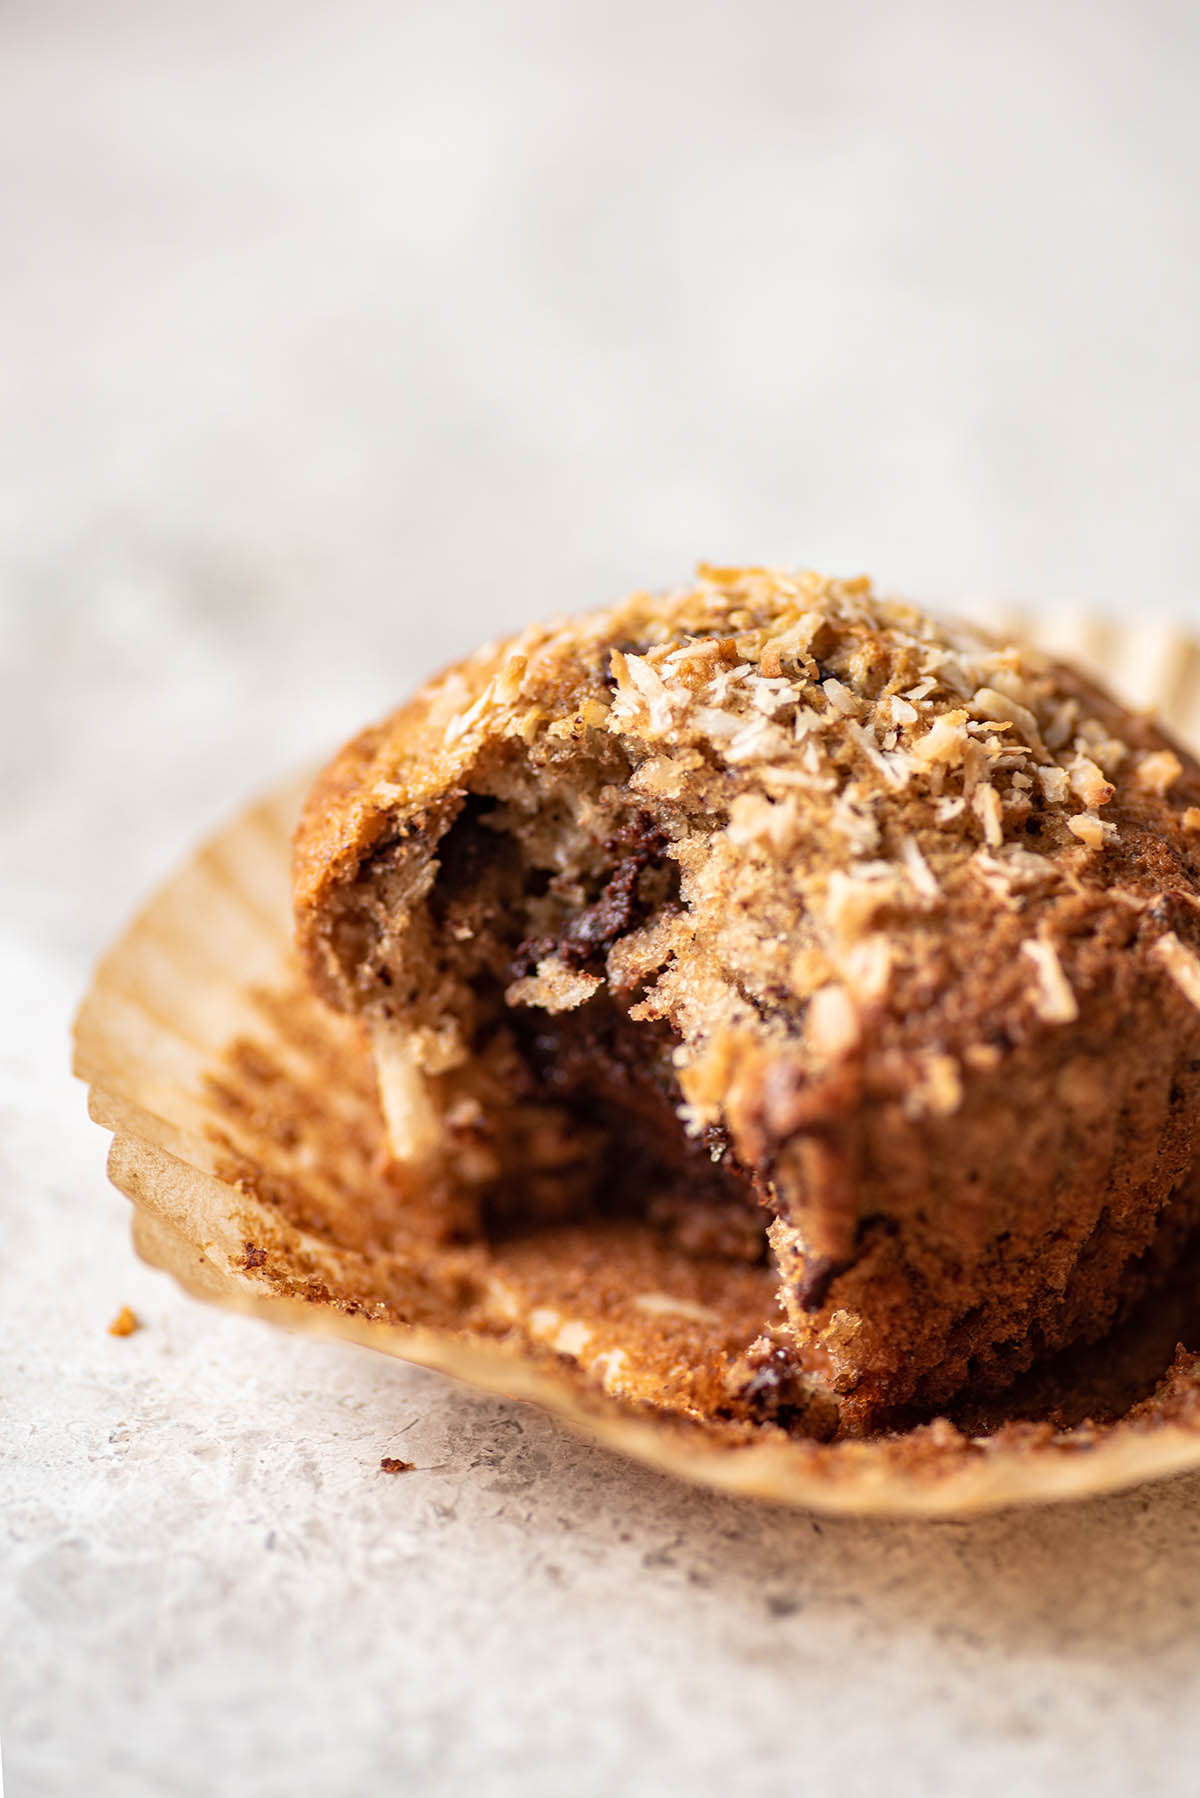 Close up of a chocolate chunk banana muffin to show internal texture.